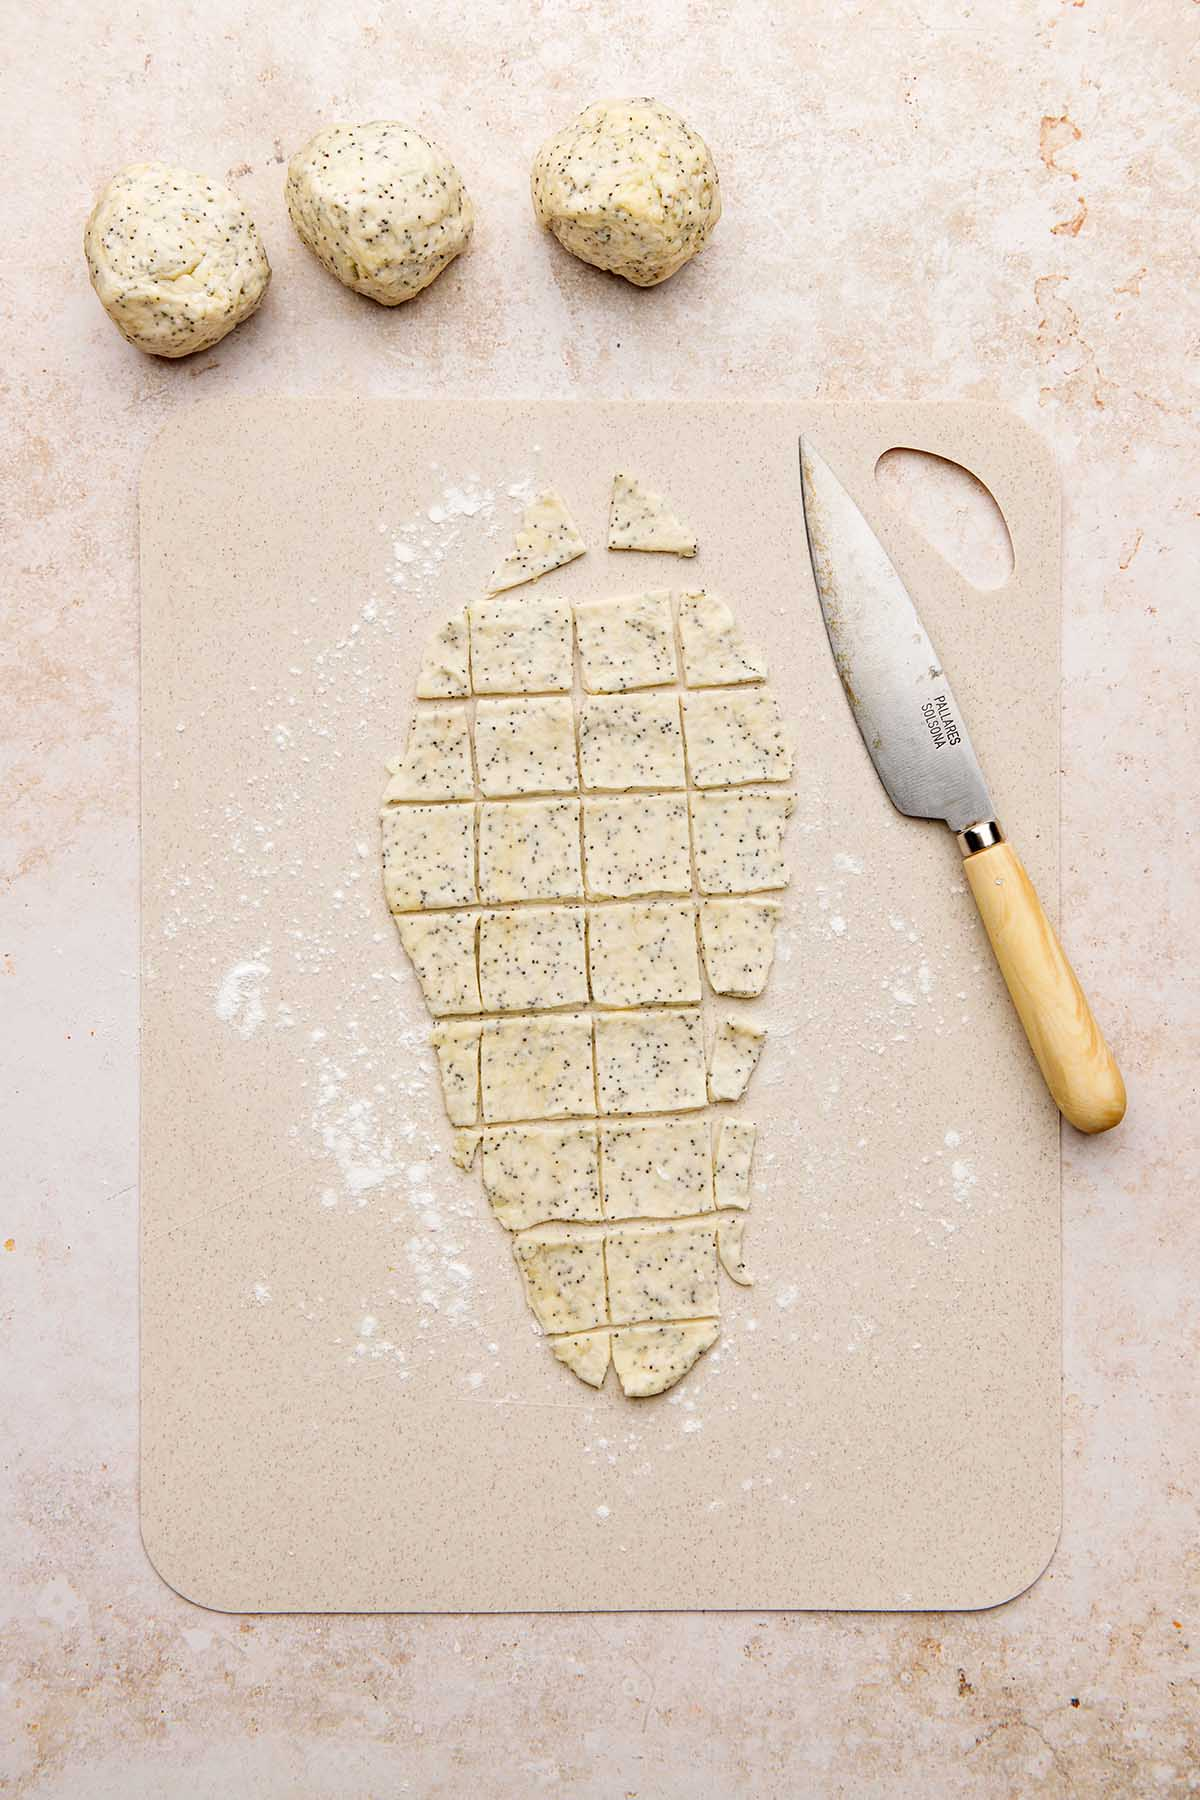 Rolled out cracker dough on a beige cutting board, sliced into pieces with a knife.